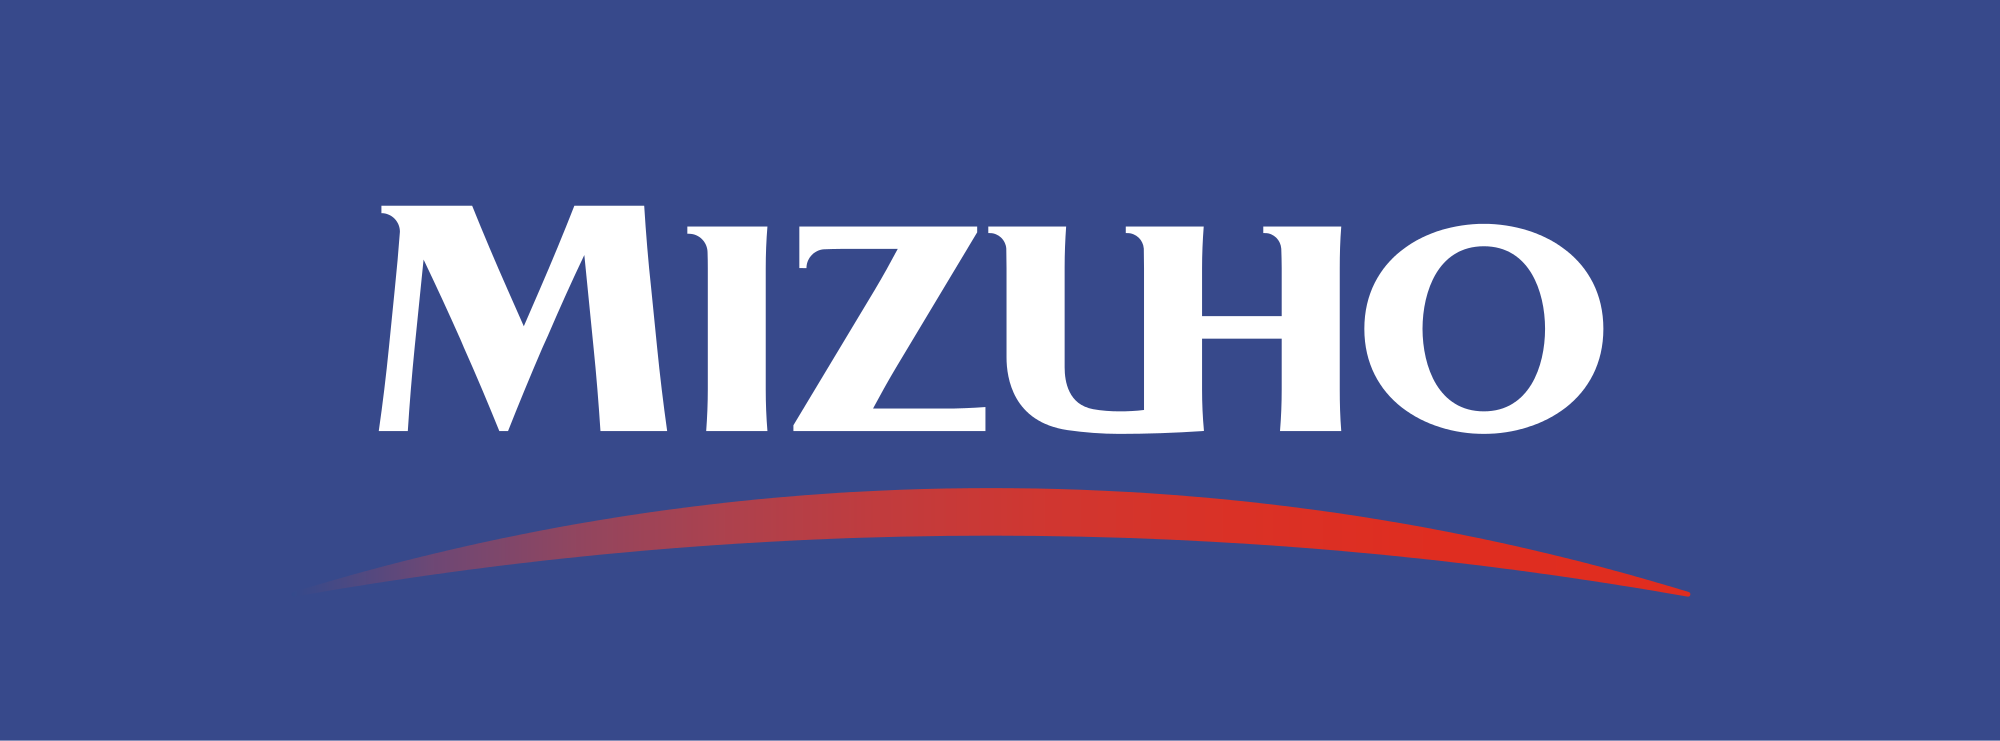 Mizuho Financial Group Inc. (ADR) (NYSE:MFG) Reaches Agreement to Acquire Block Chain Solution